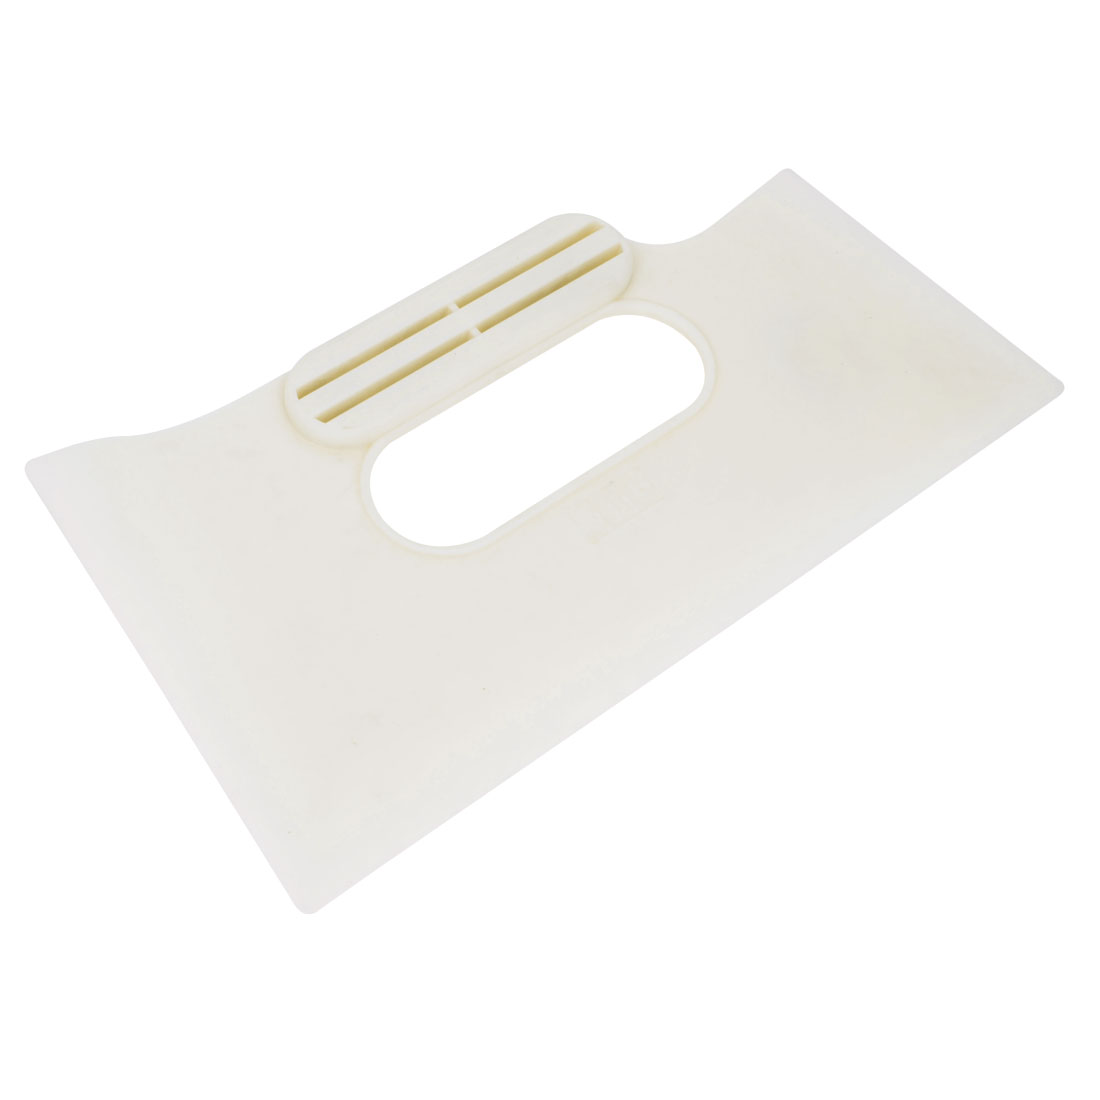 White Plastic Grip Car Window Sun Visor Tint Water Bubble Cleaner Scraper